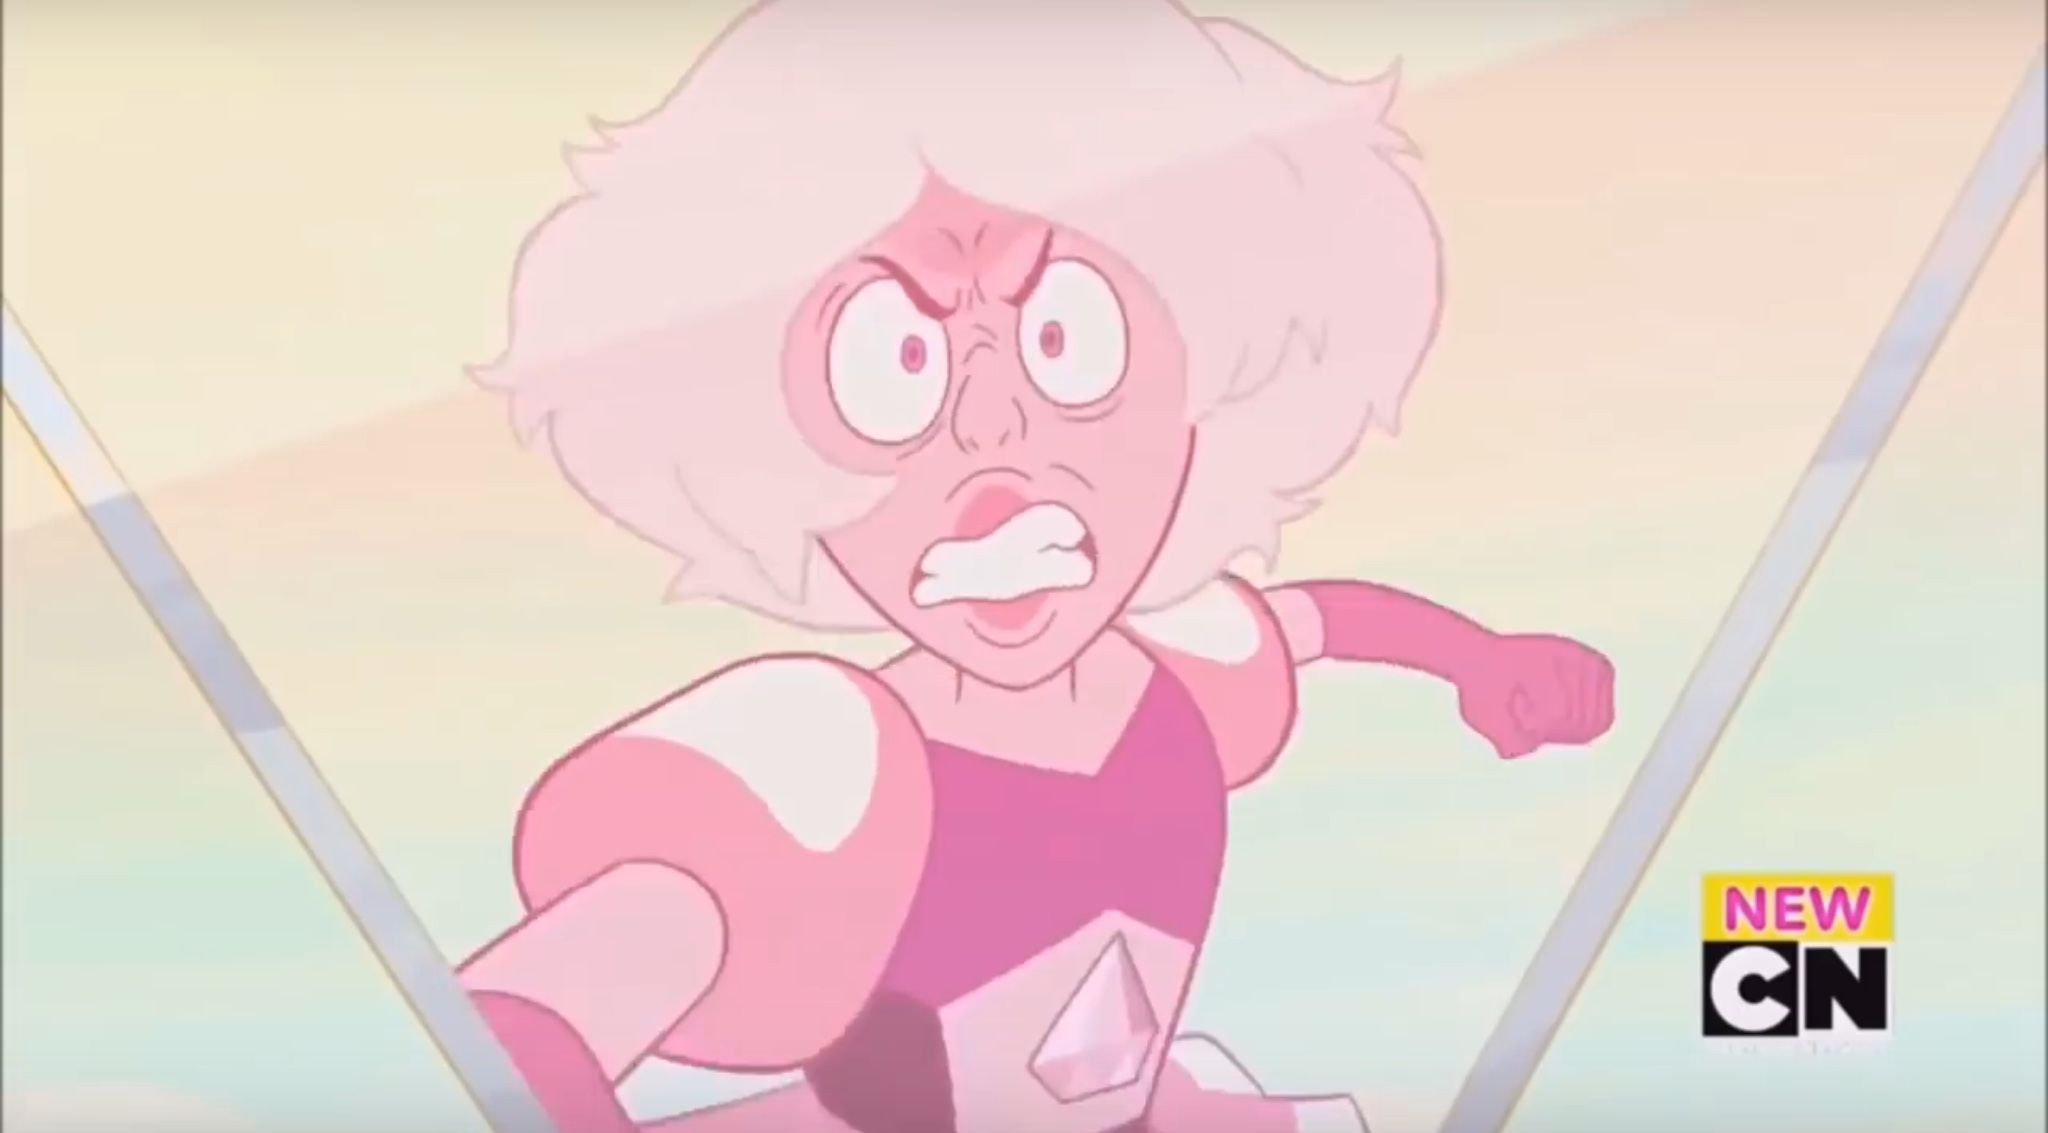 Oh My God If You Haven T Seen Lars Of The Stars Or Jungle Moon I Highly Suggest That You Do As It Was Heavy Pink Diamond Steven Universe Fanart Steven Universe